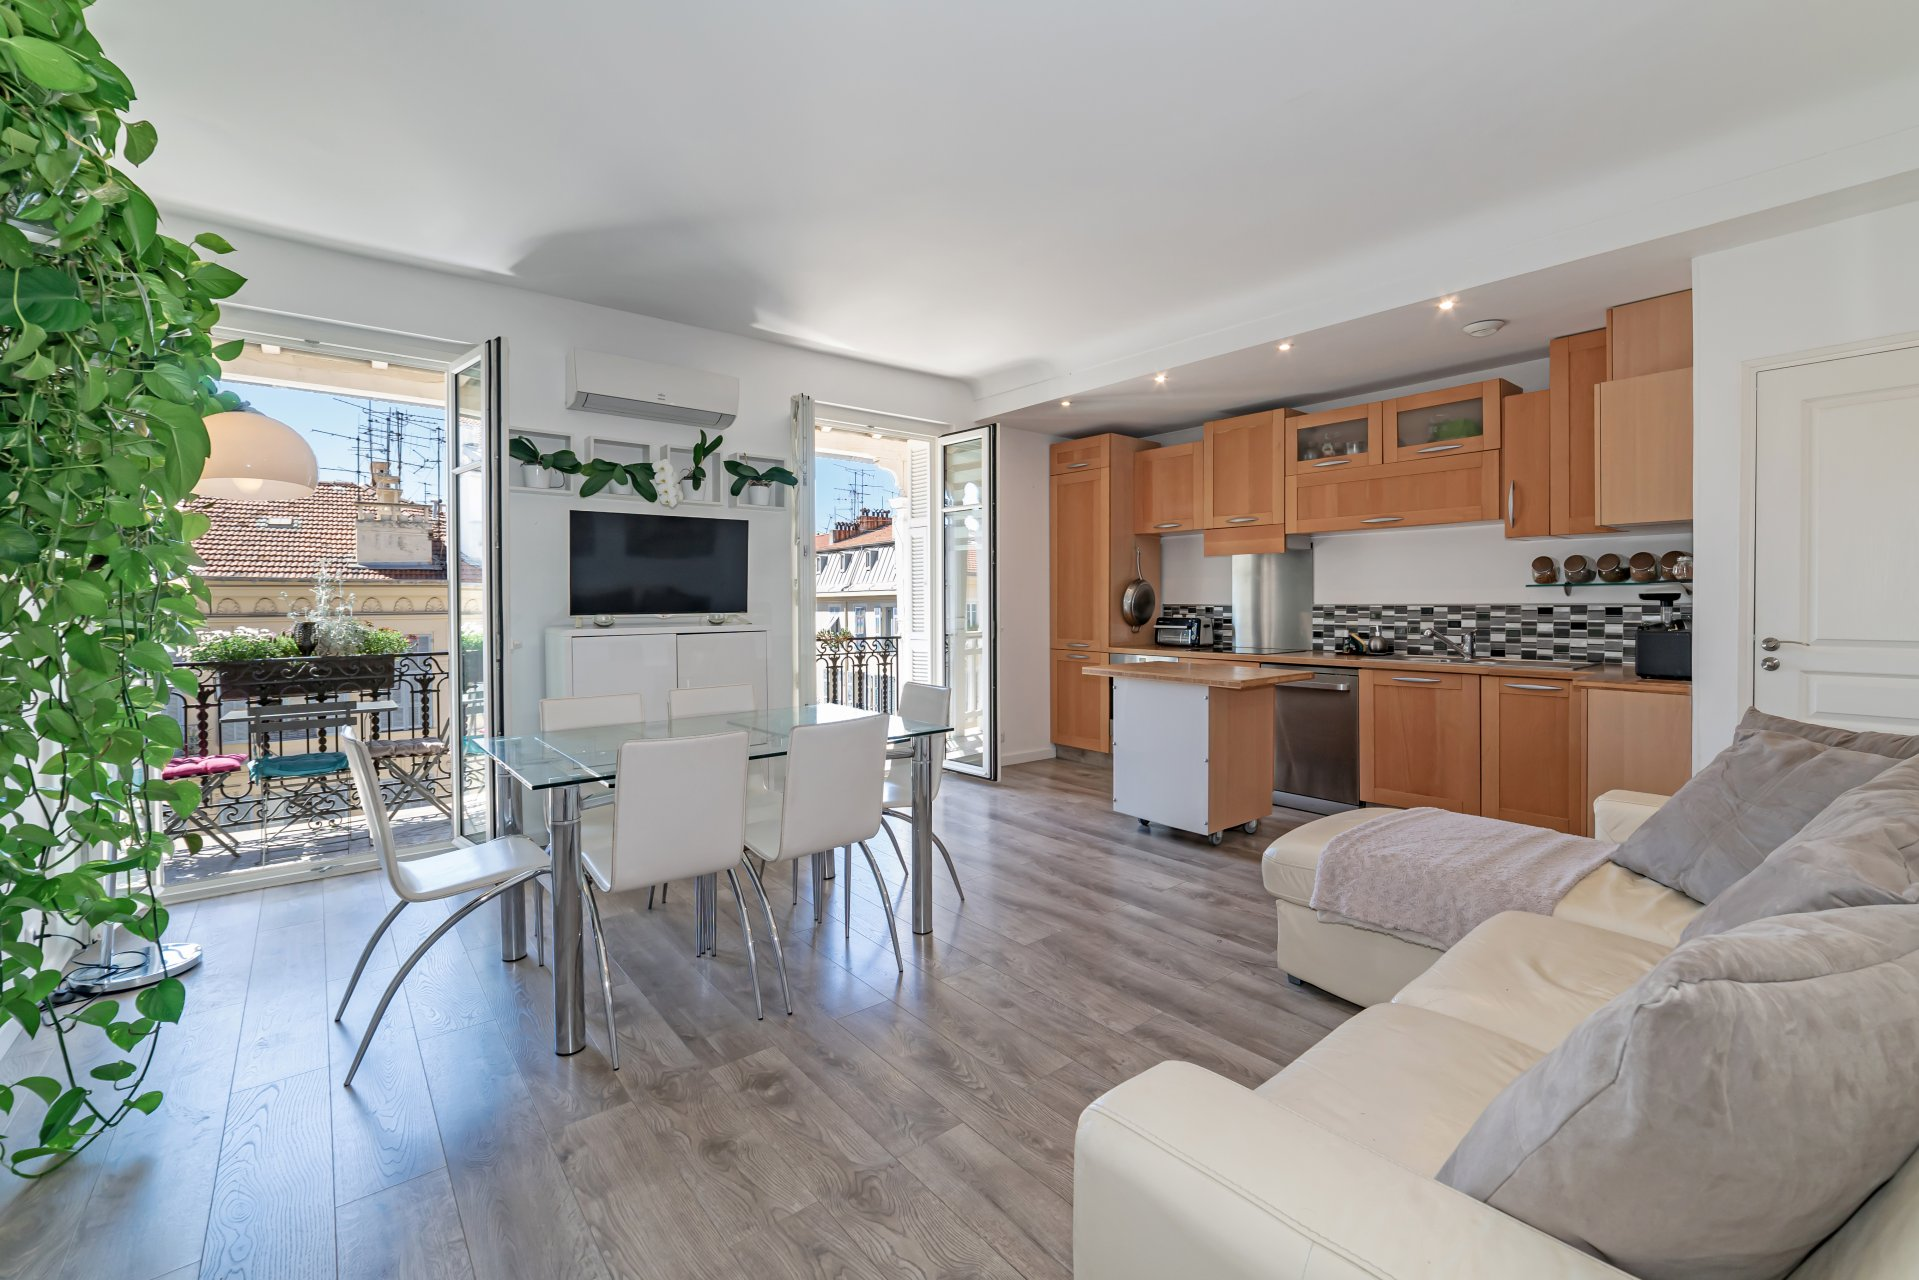 4 bedroom apartment in the City Centre